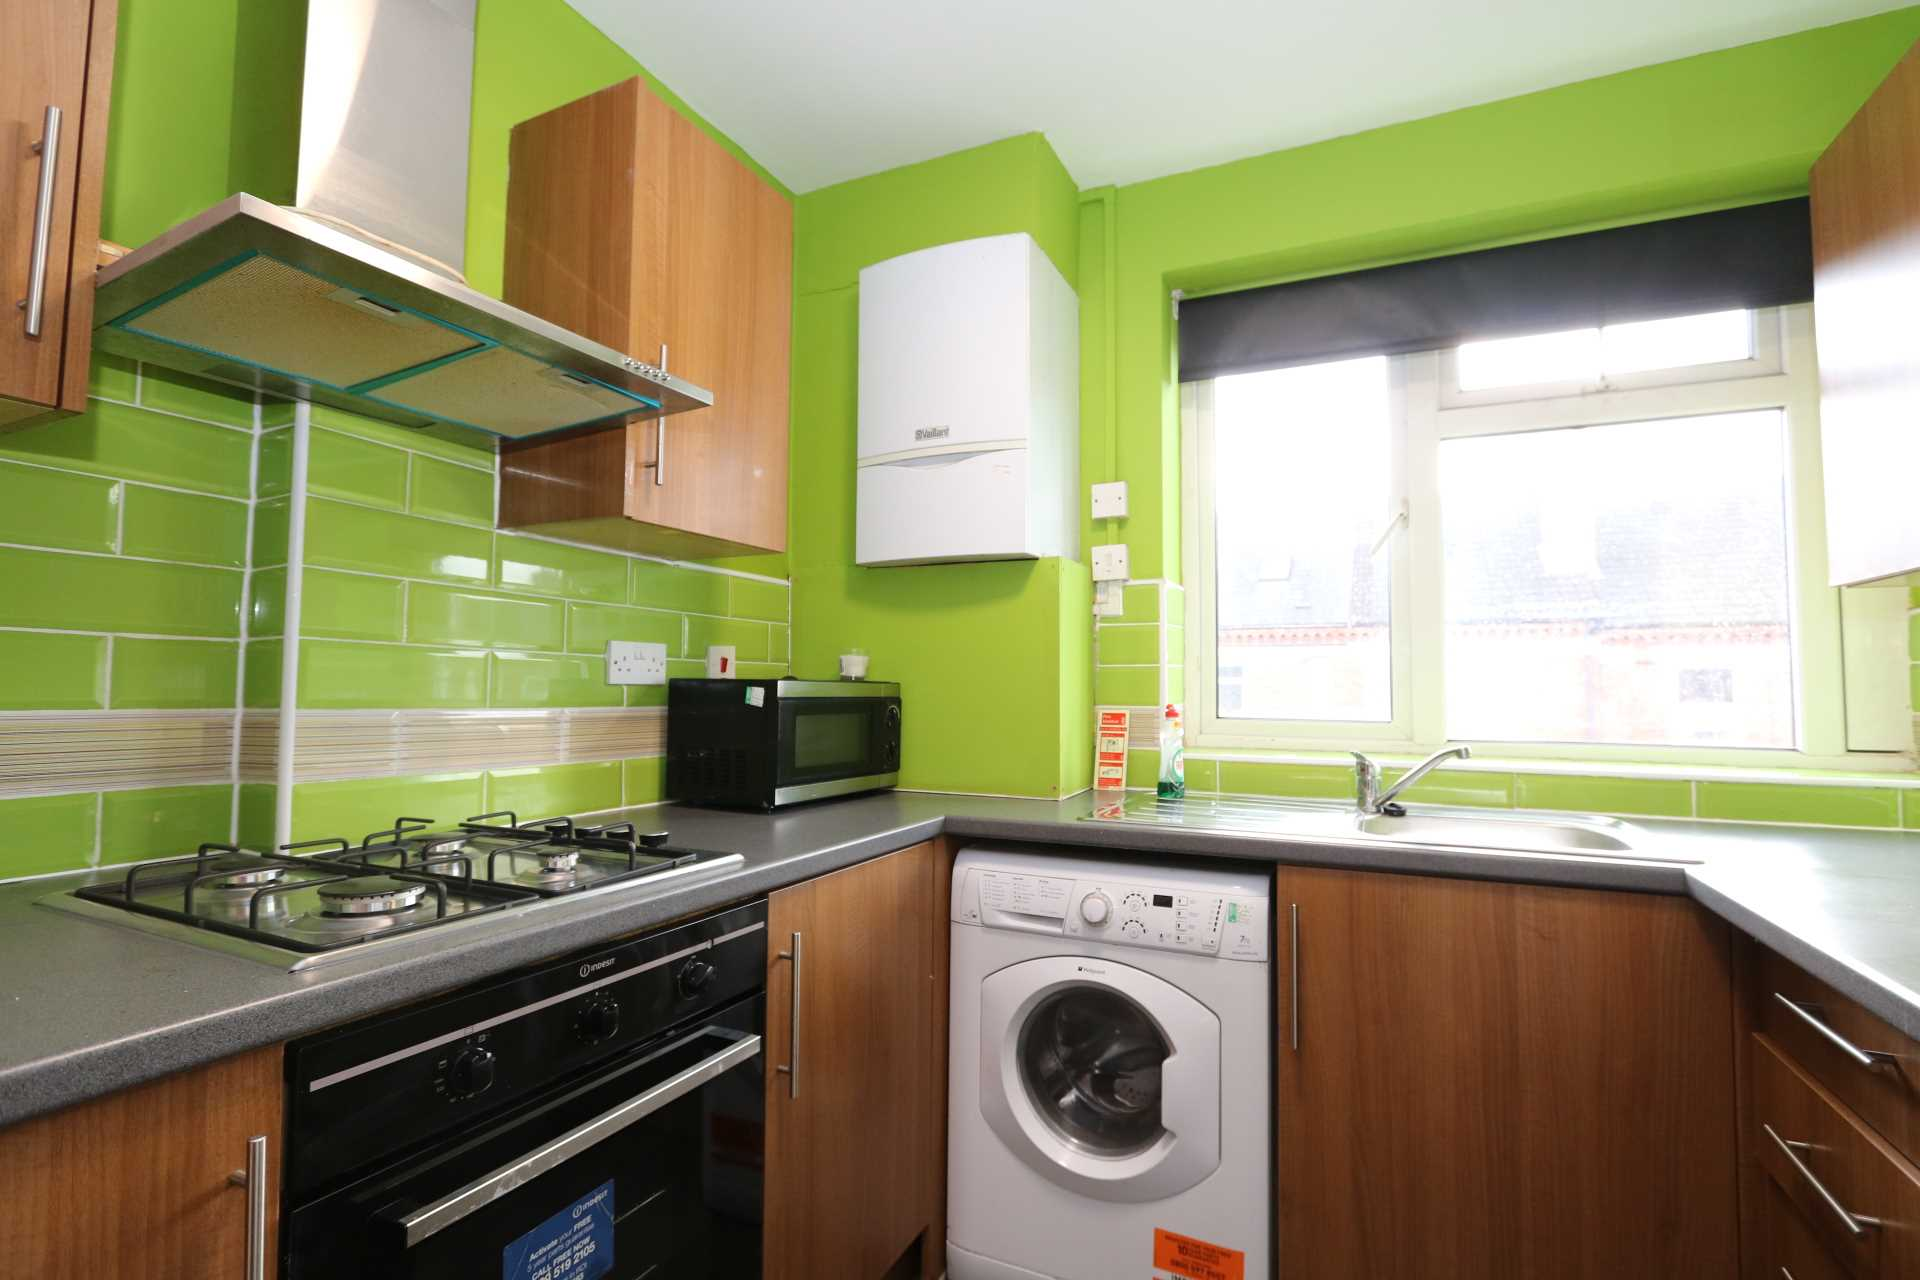 Room 1 Dysart Close - fully furnished double en-suite student room, WIFI & bills included - NO FEES, Image 4